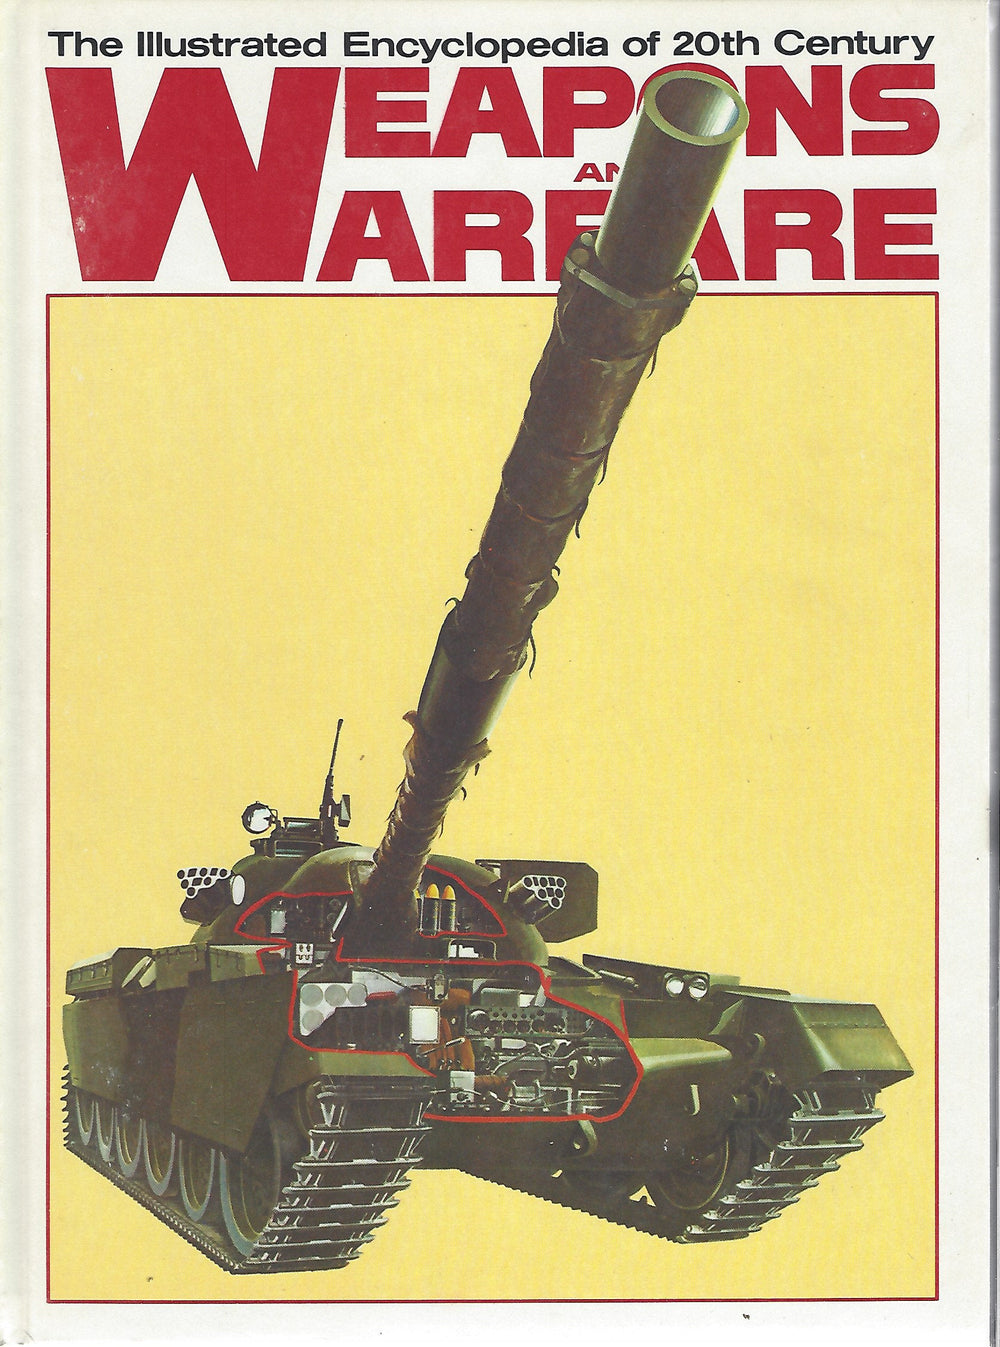 The Illustrated Encyclopedia of 20th Century:  Weapons and Warfare; Volume 6 Centurion/CZ   (1978)